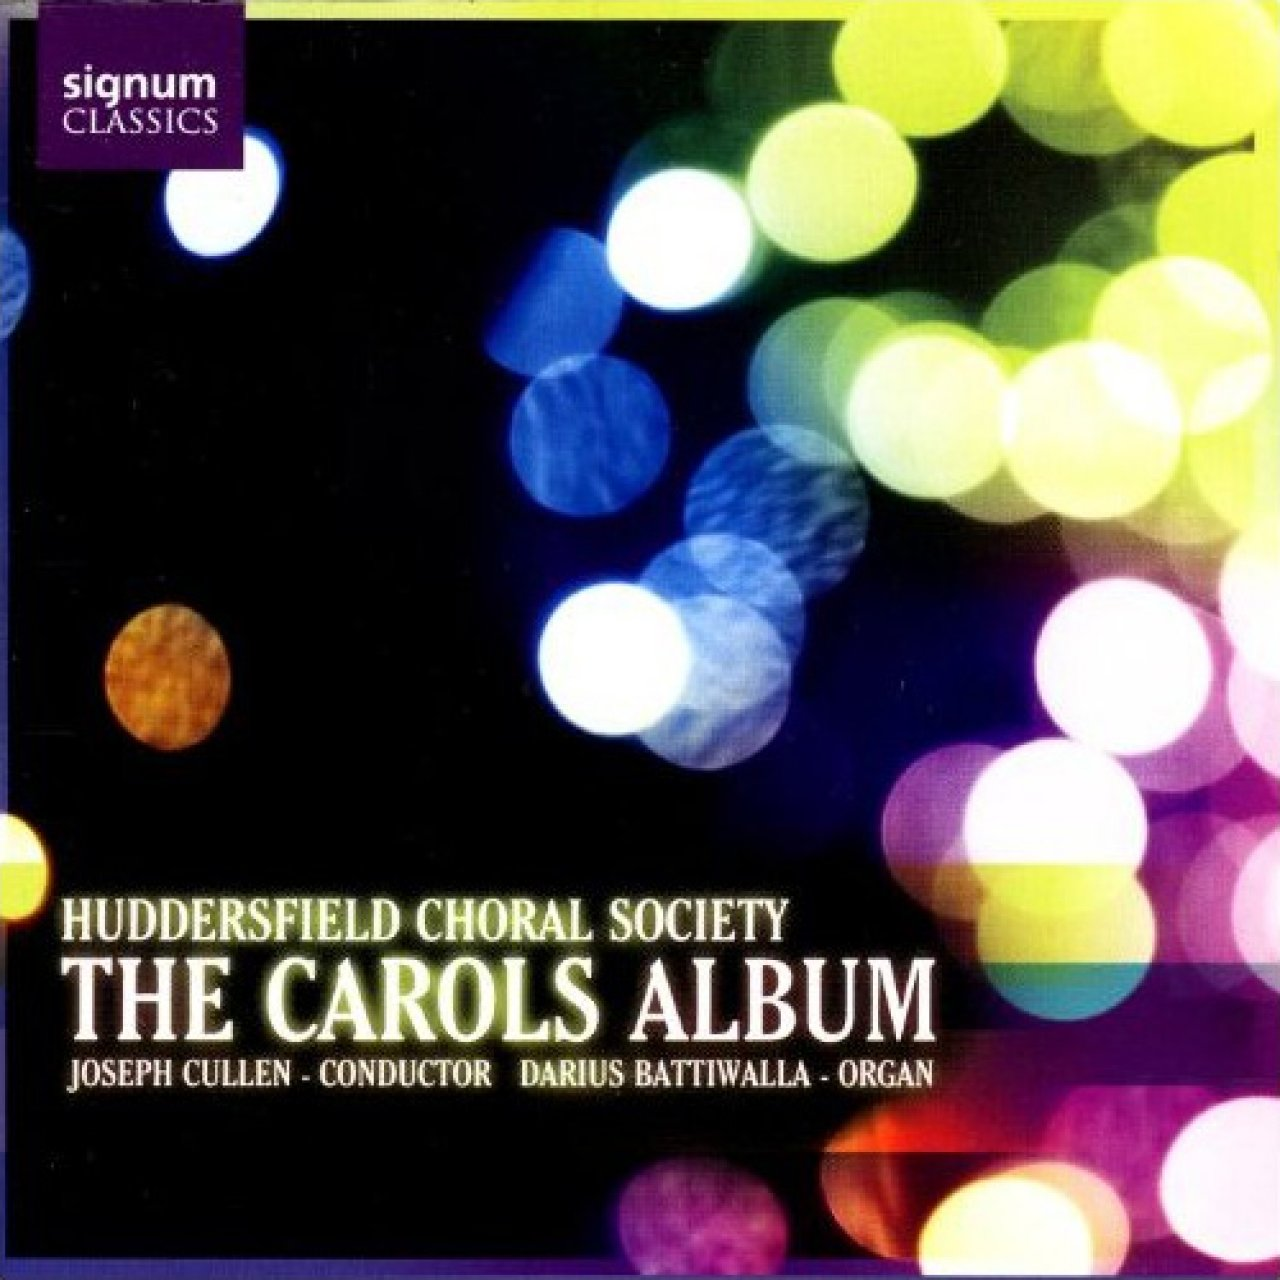 Huddersfield Choral Society - The Carols Album (2007)